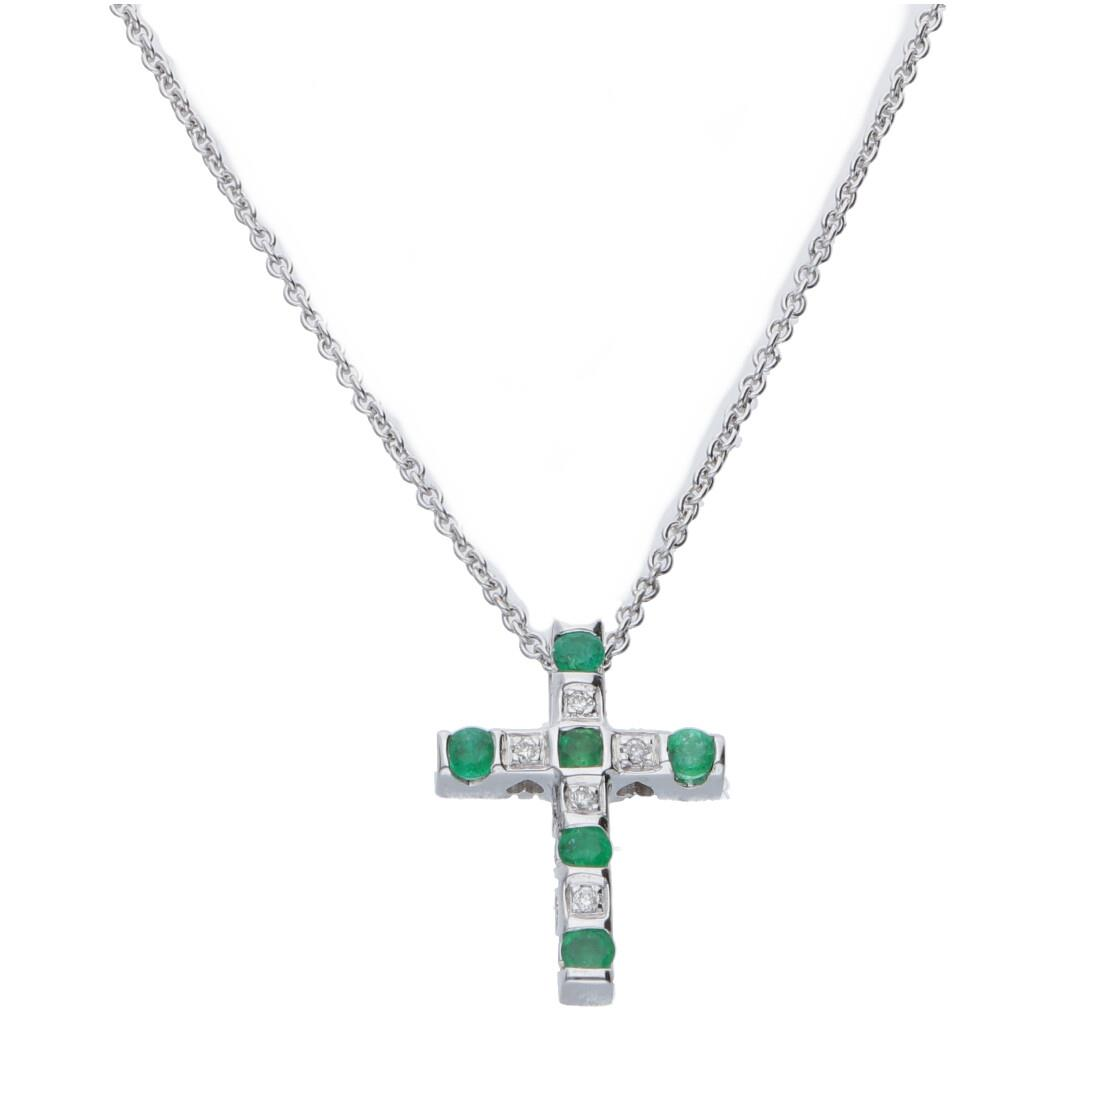 Collana croce con diamanti e smeraldi - BLISS